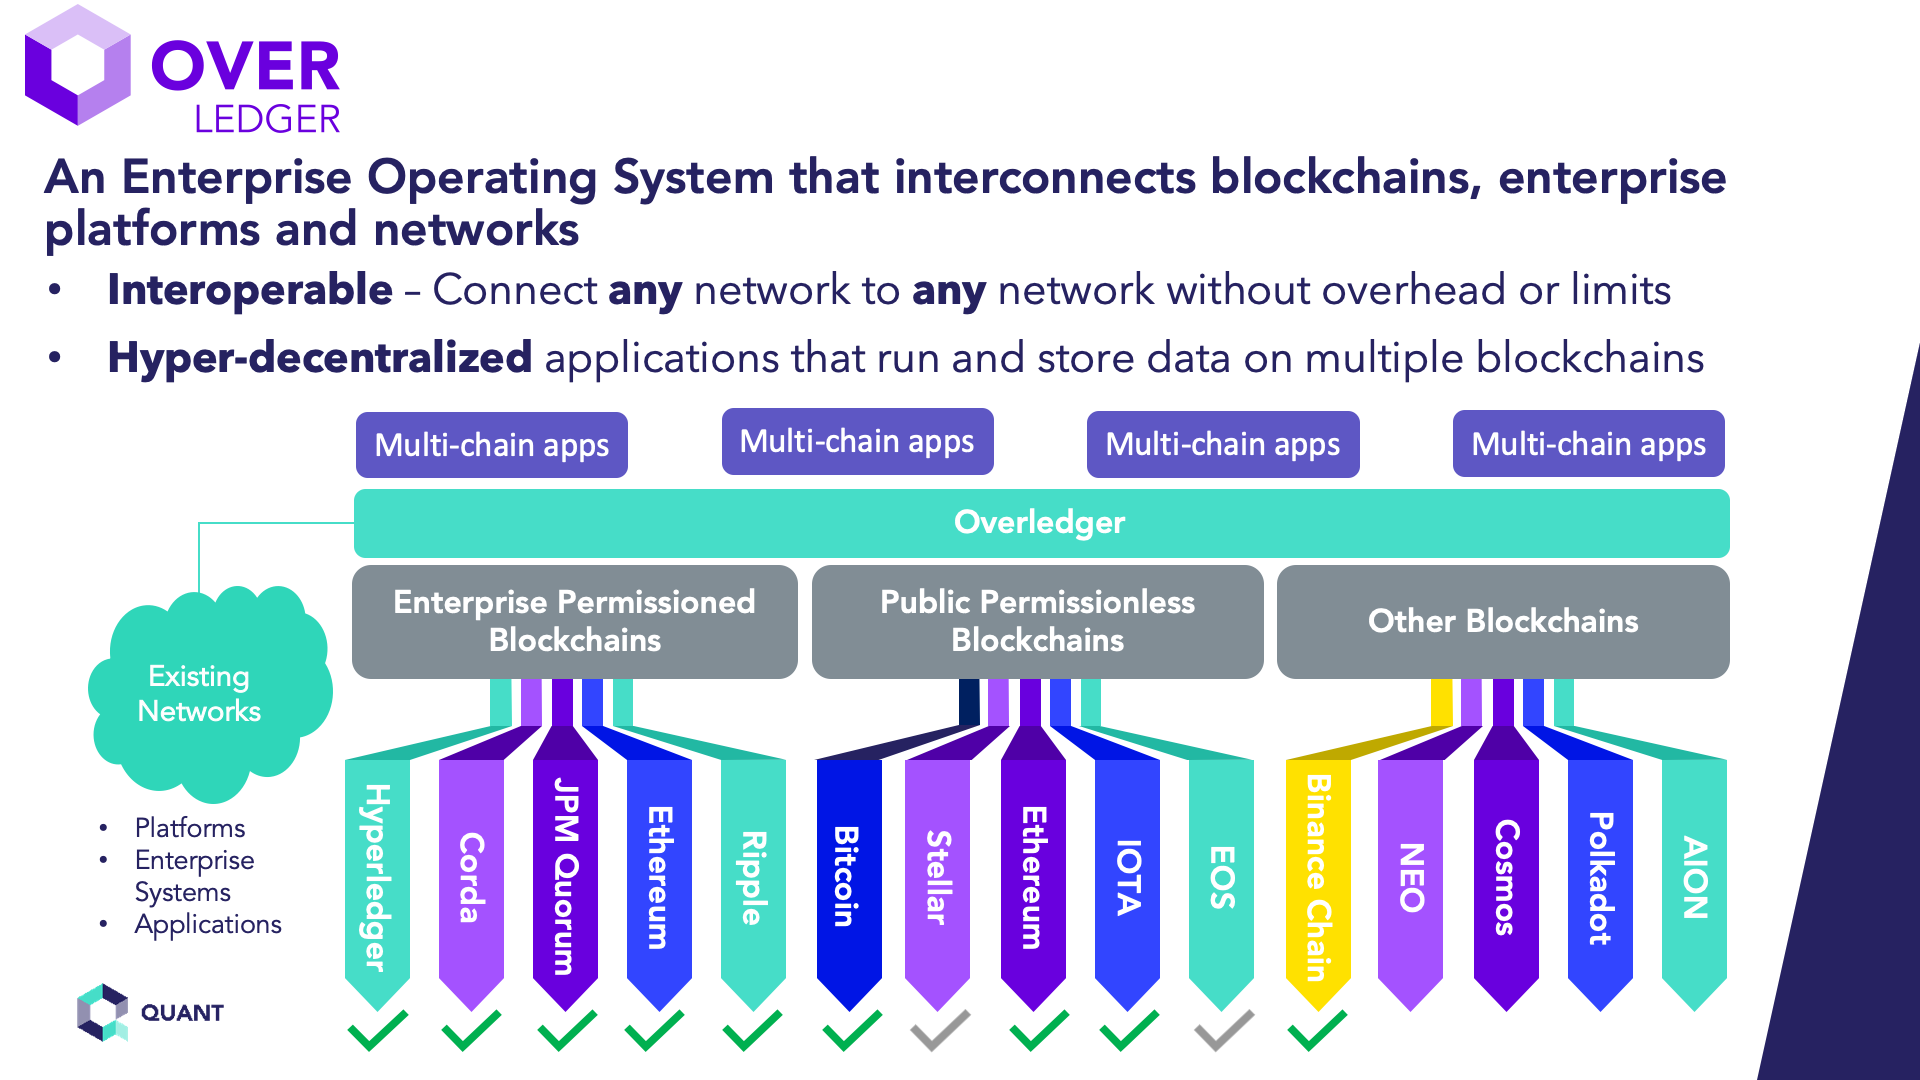 What is a blockchain operating system and what are the